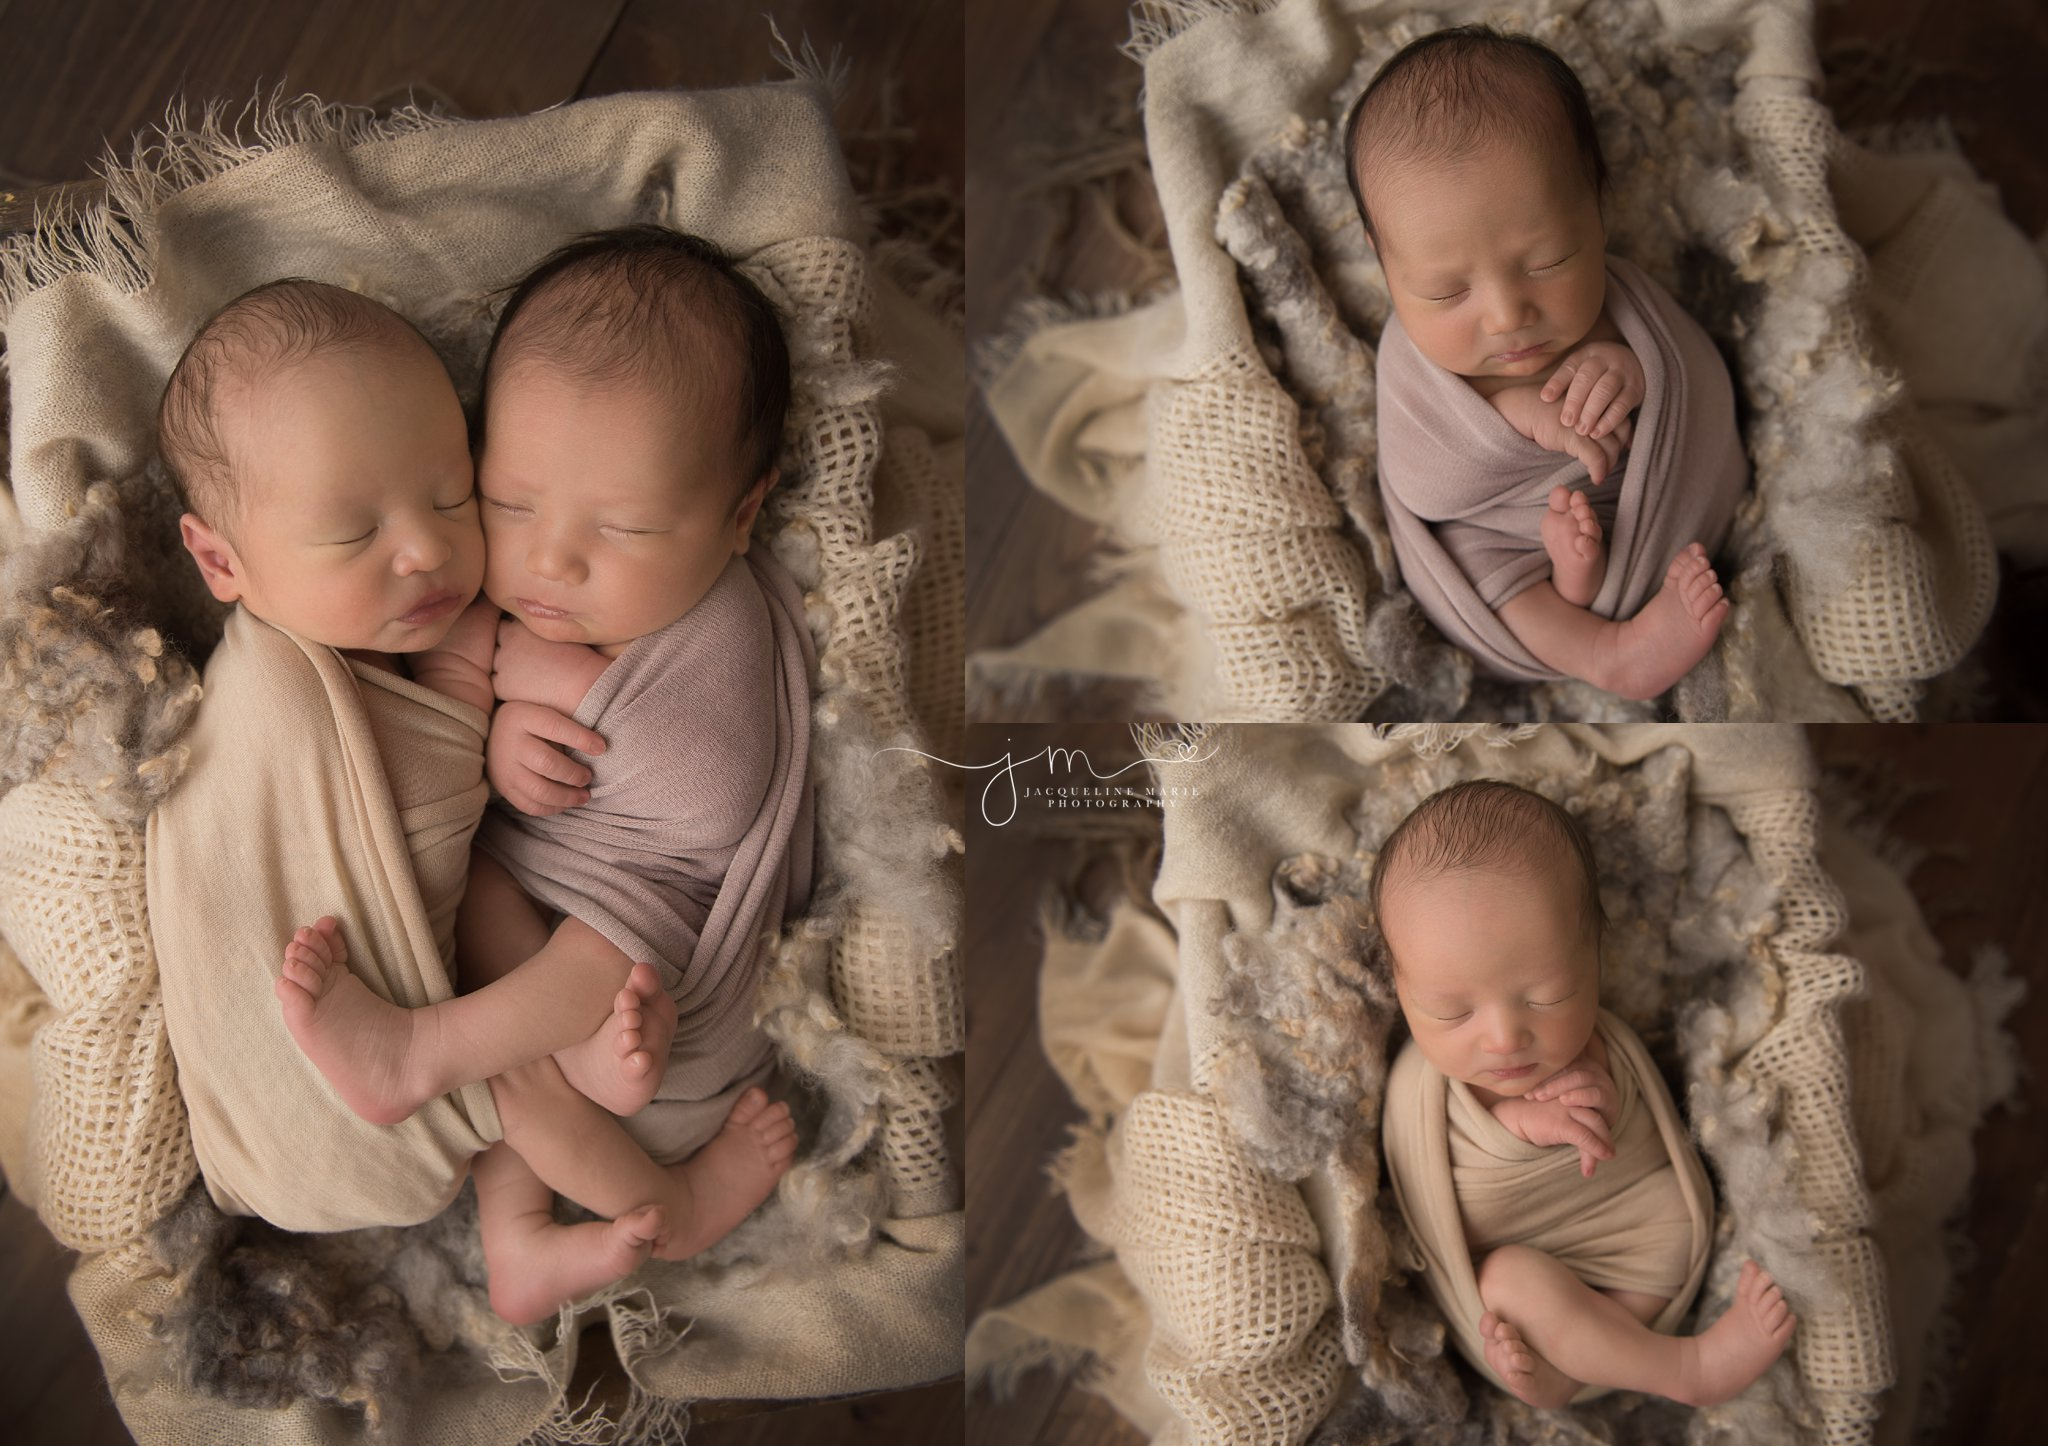 newborn twin baby photography in columbus ohio features image of babies swaddled in neutral colors in a wood crate